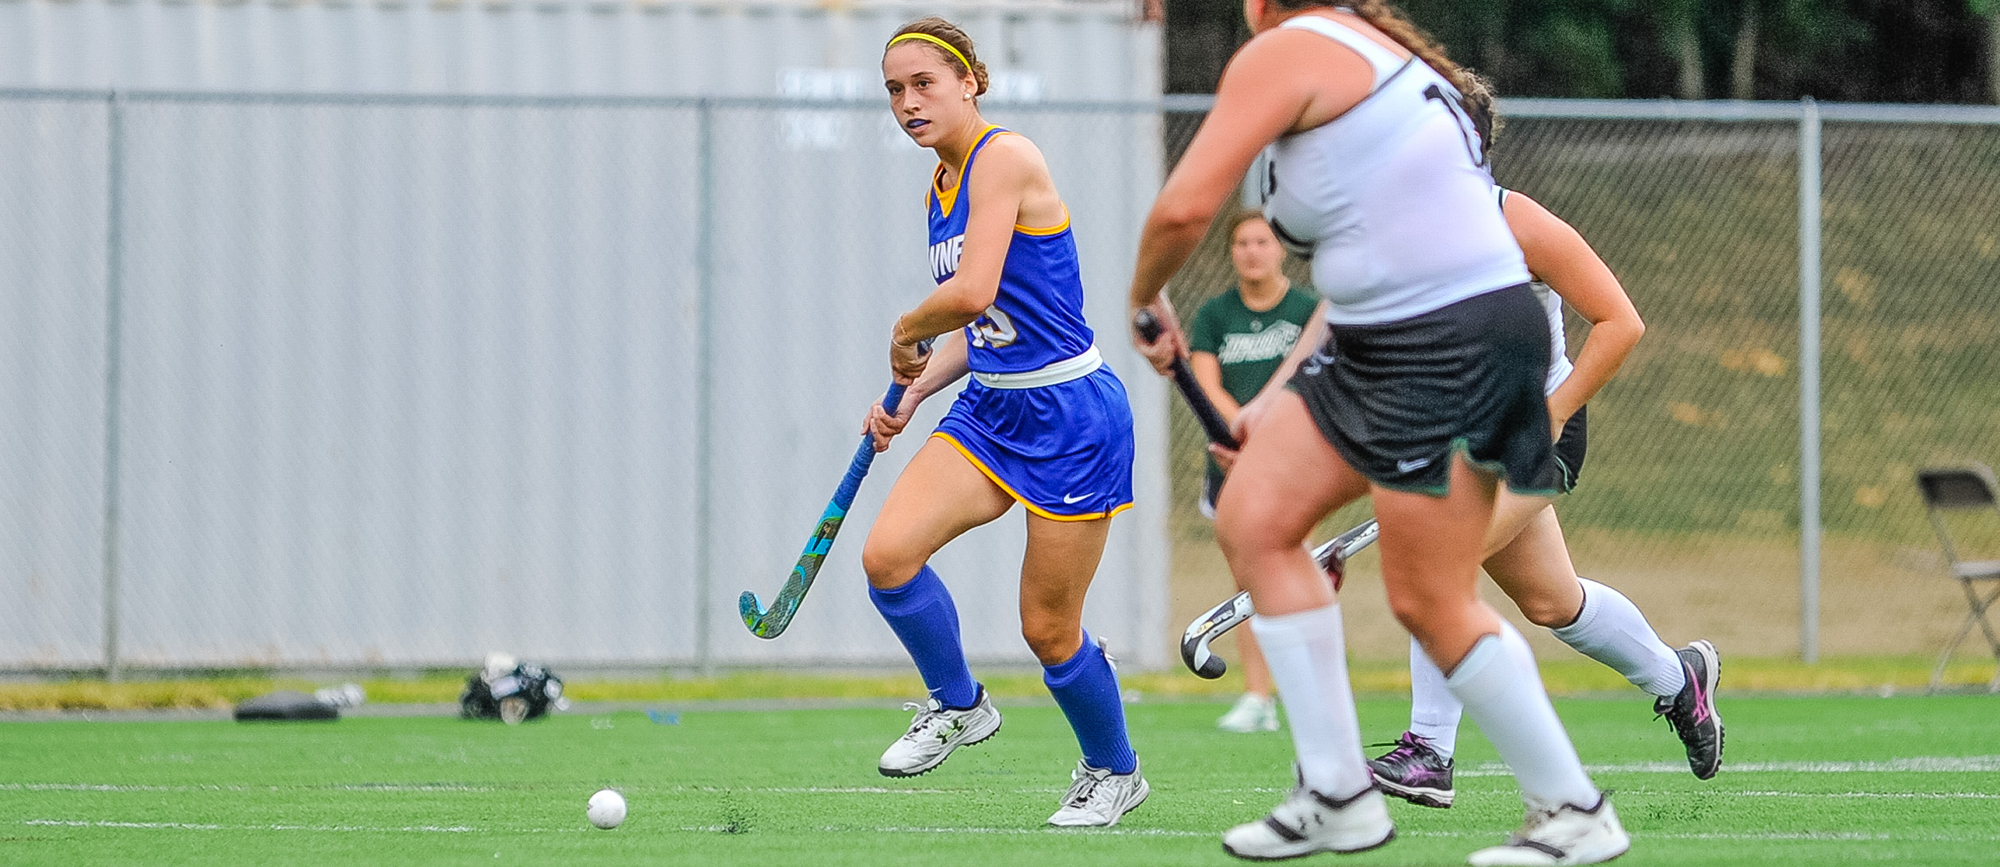 Junior Jackie Clark recorded two goals in Western New England's 4-3 loss to Clark on Saturday. (Photo by Bill Sharon)